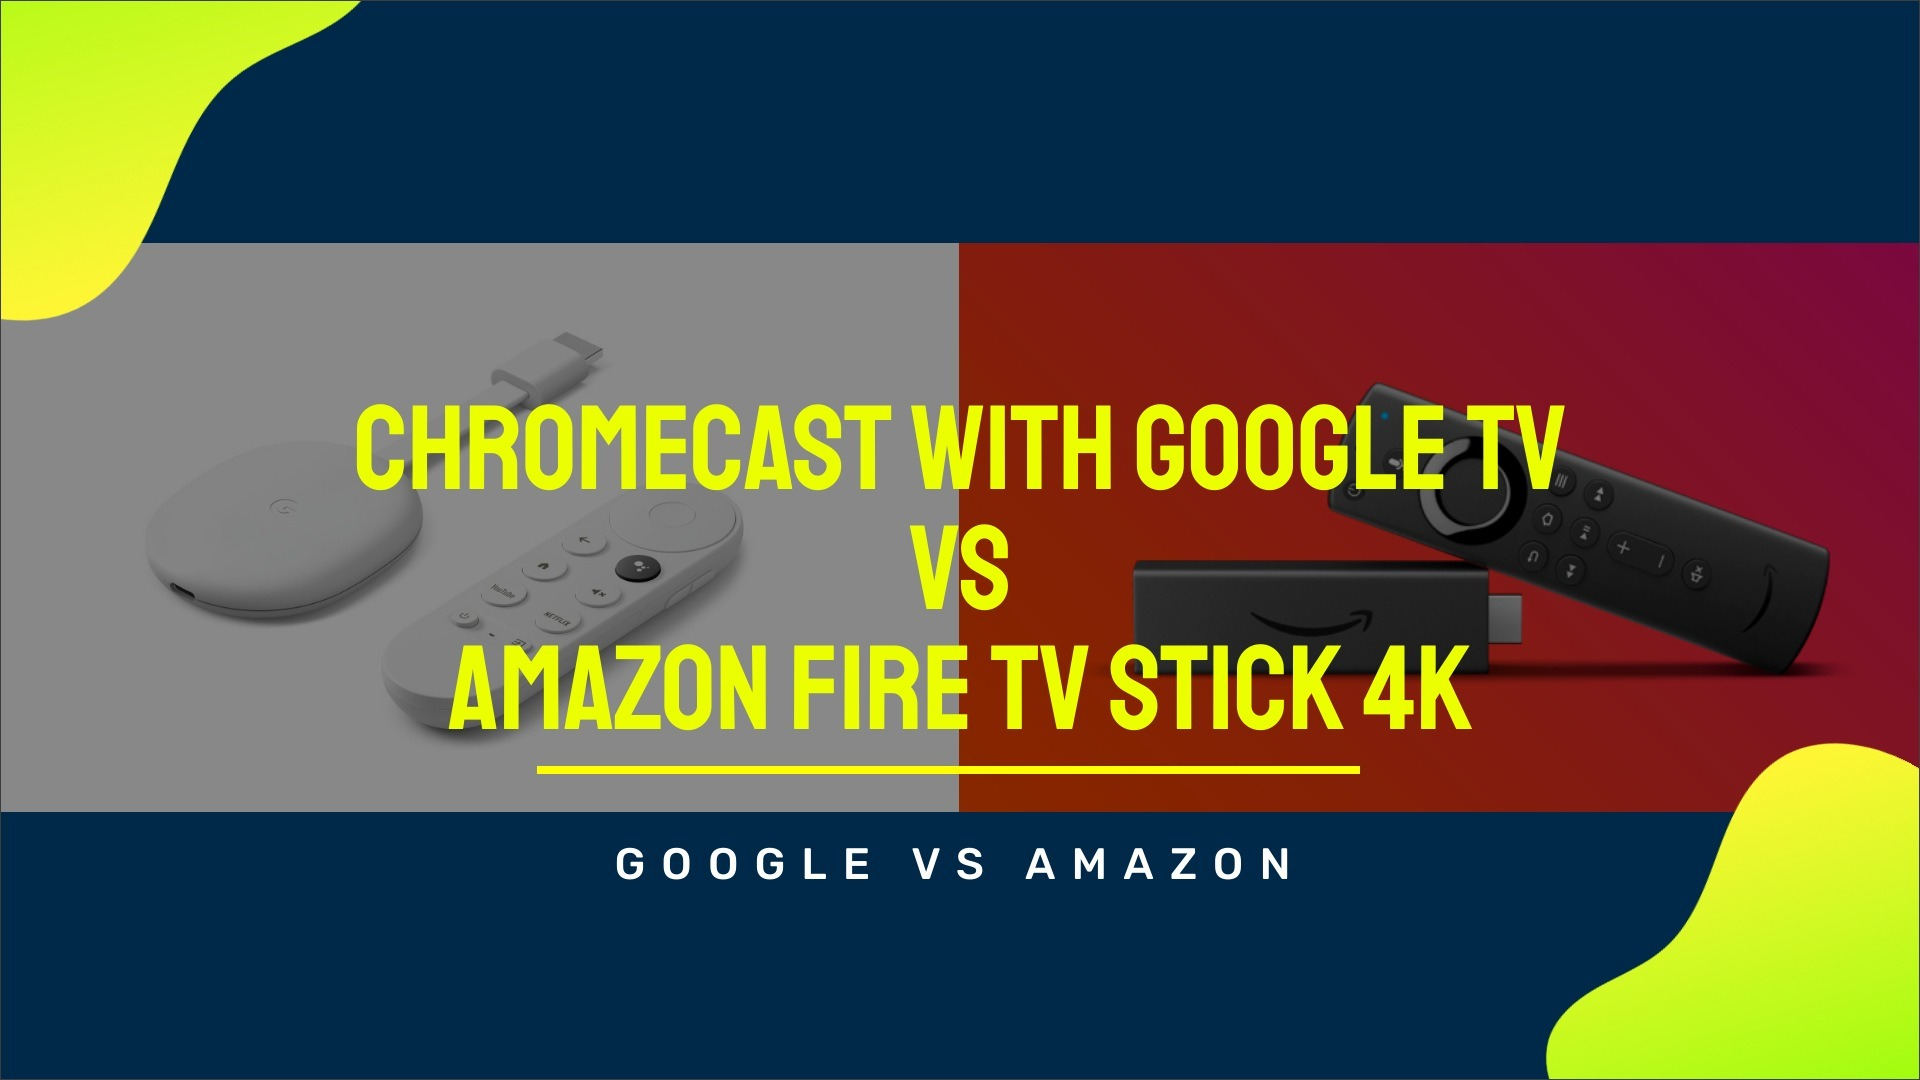 Apple TV & HBO Max App are in both devices finally, which is better? Chromecast with Google TV vs Fire TV Stick | Google vs Amazon